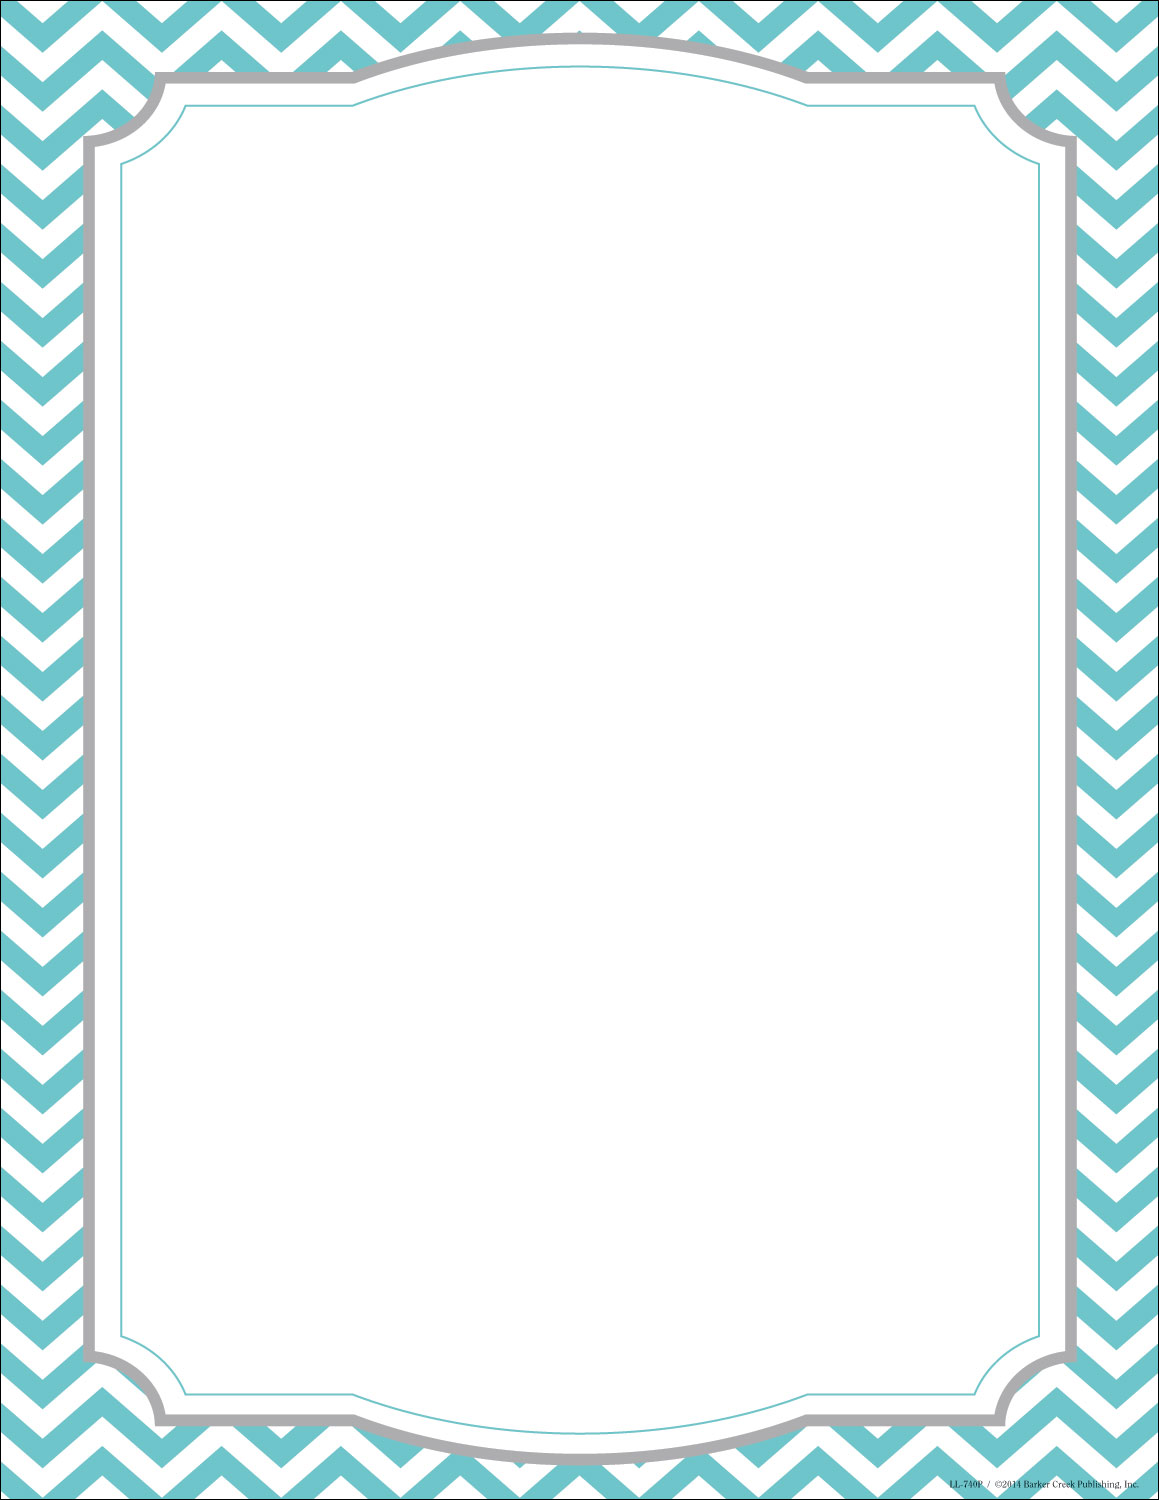 image regarding Chevron Printable Paper known as Turquoise Chevron Letterhead - 50 Rely [DP740] : Designer Papers  attractive printer paper Printable Paper Xmas stationery